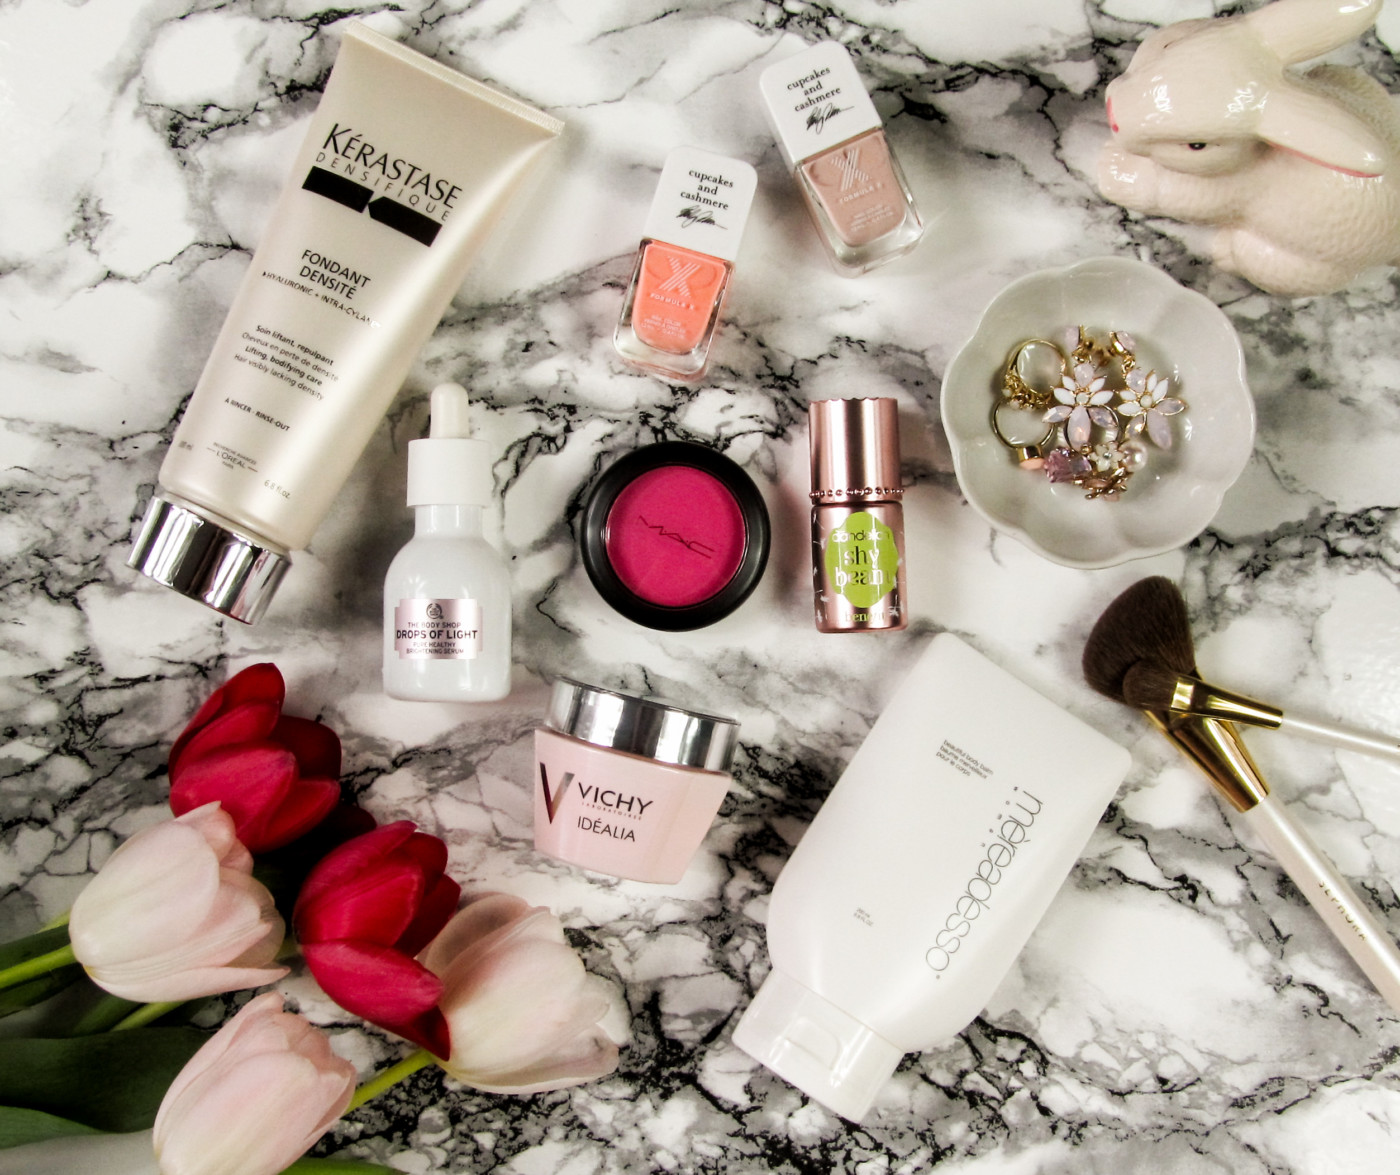 spring beauty, spring beauty 2016, how to get ready for spring, best way to make my skin look better for spring, kerastase fondant densite, kerastase densifique, vichy idealia, vichy idealia cream, illuminating skin cream, how to make my skin look glowy, the body shop drops of life, the body shop drops of life brightening serum, brightening serum, benefit dandelion, benefit cosmetics dandelion, benefit dandelion shy beam, shy beam, matte highlighter, mereadesso, mereadesso beautiful body balm, formula x color curators, formula x cupcakes and cashmere, mac let's be friends, mac powder blush, mac flamingo park blush, spring makeup